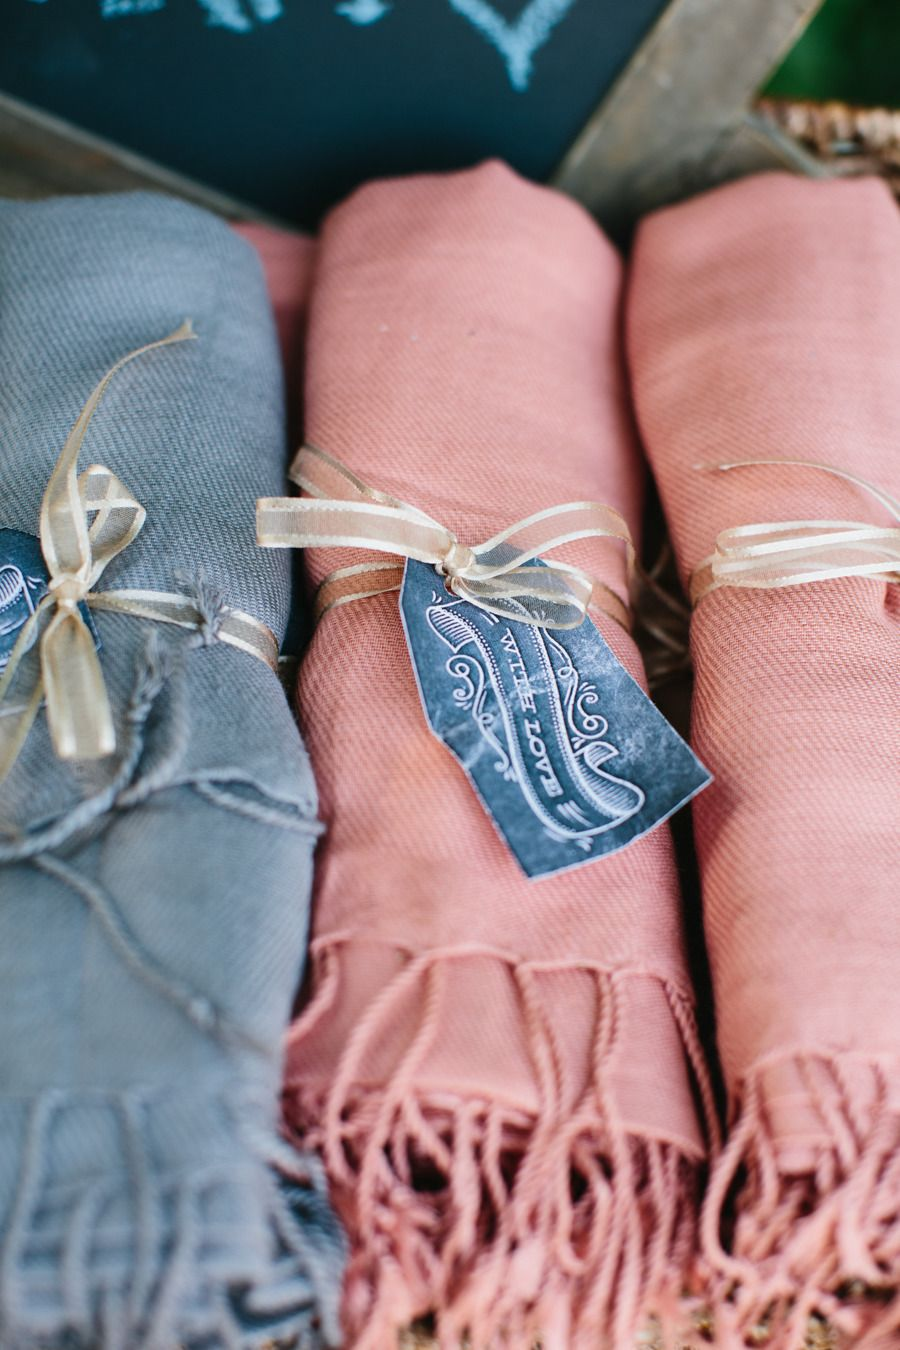 20 Fab Favors That Will Dazzle Your Guests | Pashminas, Favors and ...